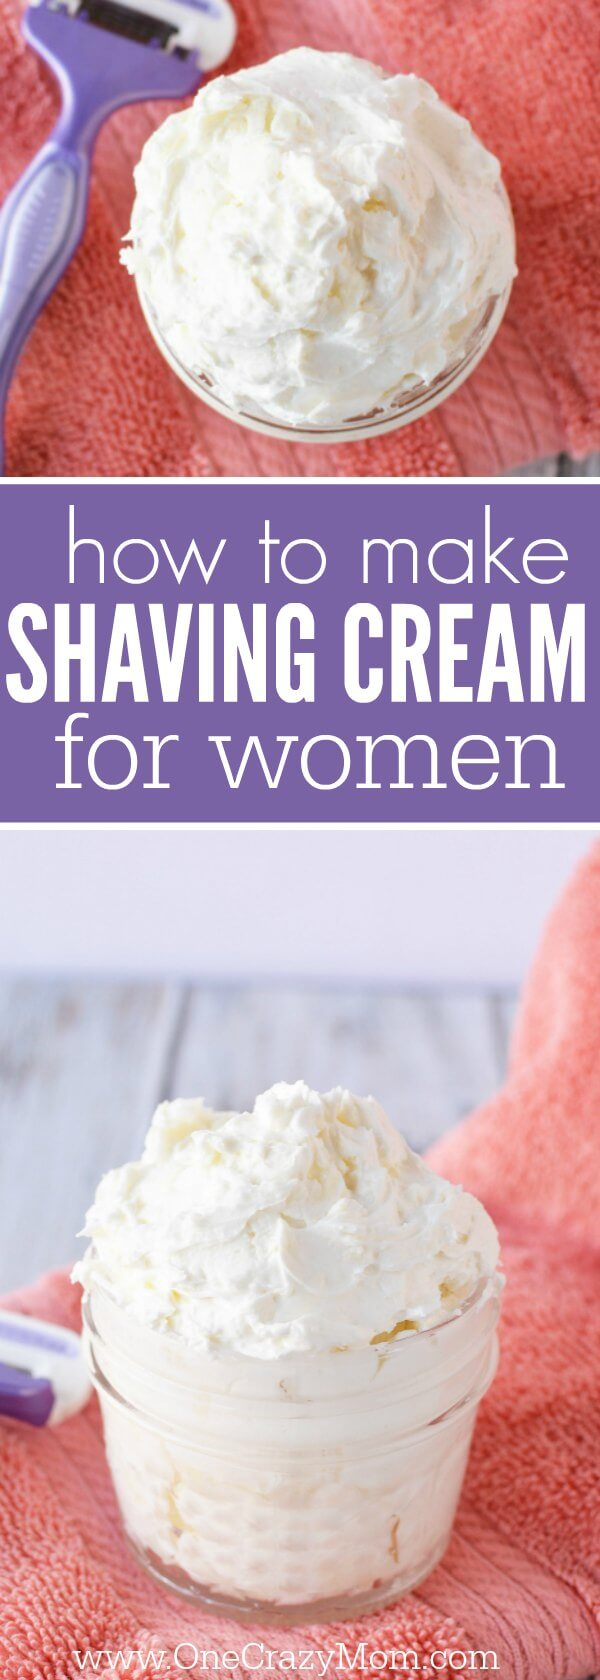 Try this diy shaving cream for Women for a closer shave.You will love how luxurious this natural shaving cream is. This easy homemade shaving cream leaves your skin silky smooth! Plus, its very simple and quick to make.